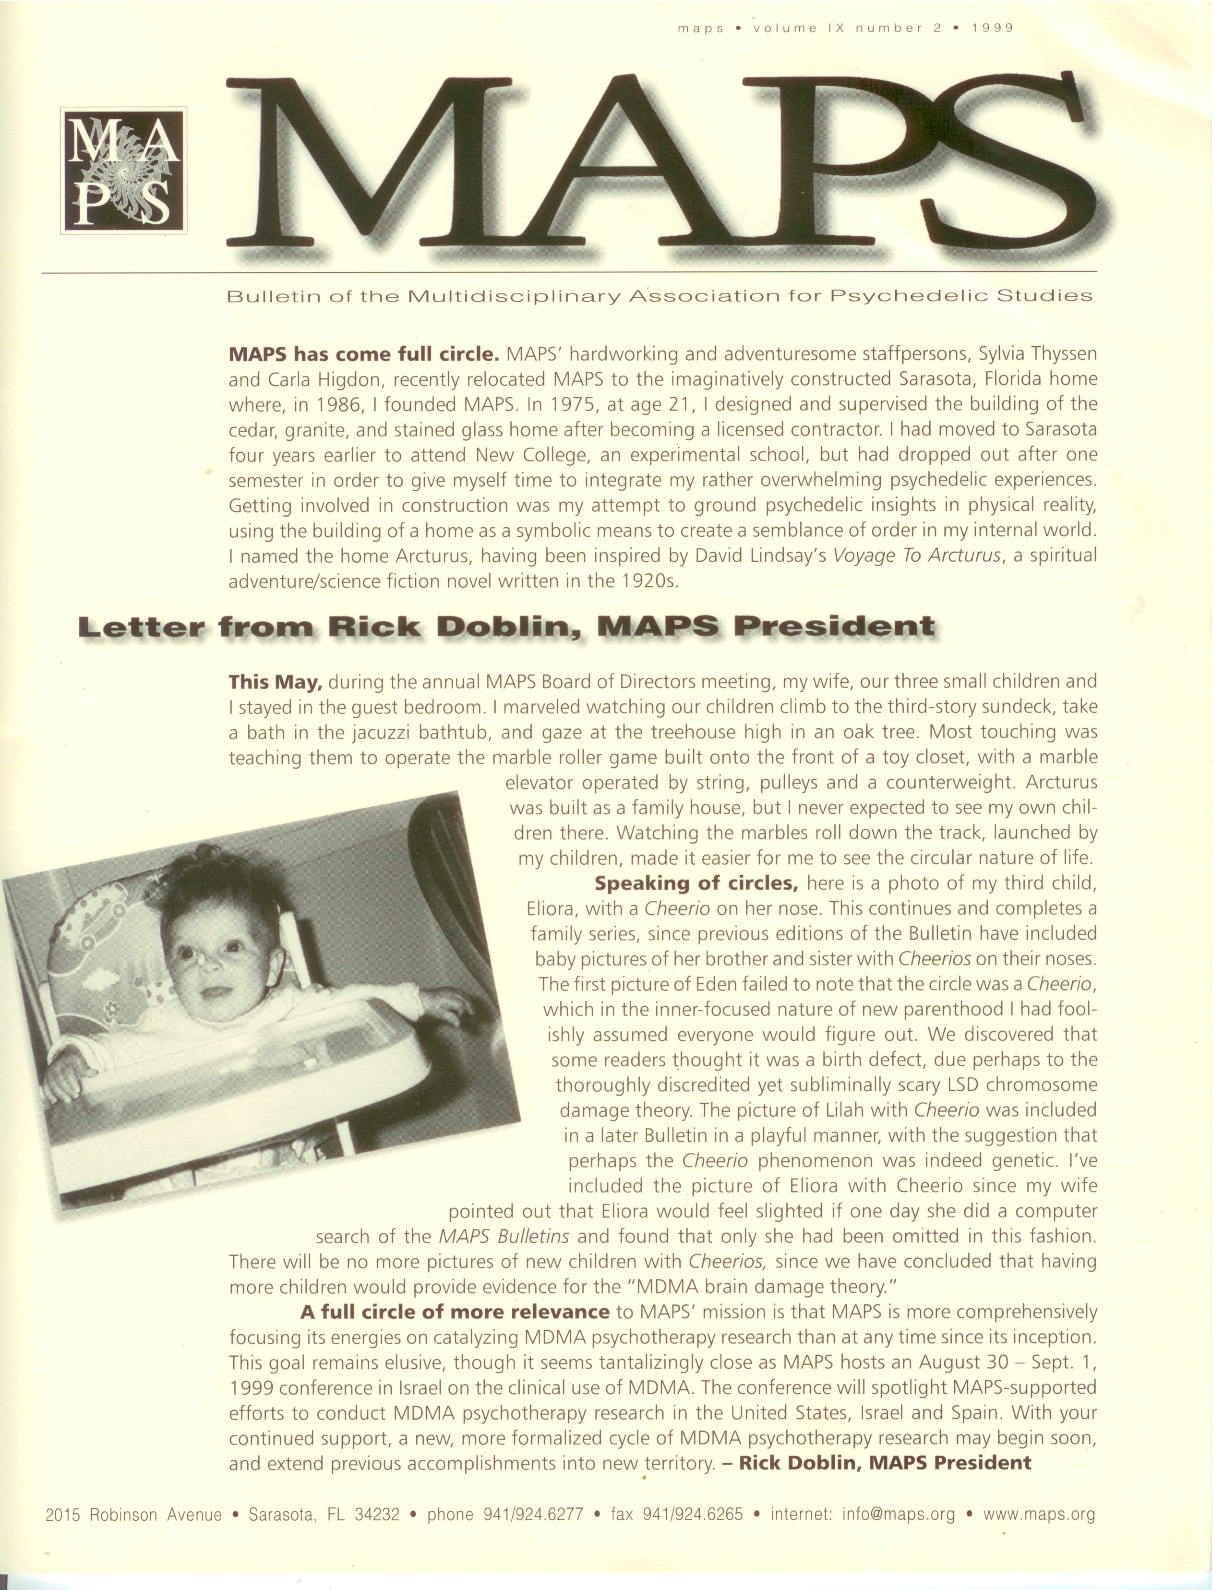 MAPS Bulletin Vol ix No 2: Summer 1999 - Front Cover Image - Psychedelic Art -  by